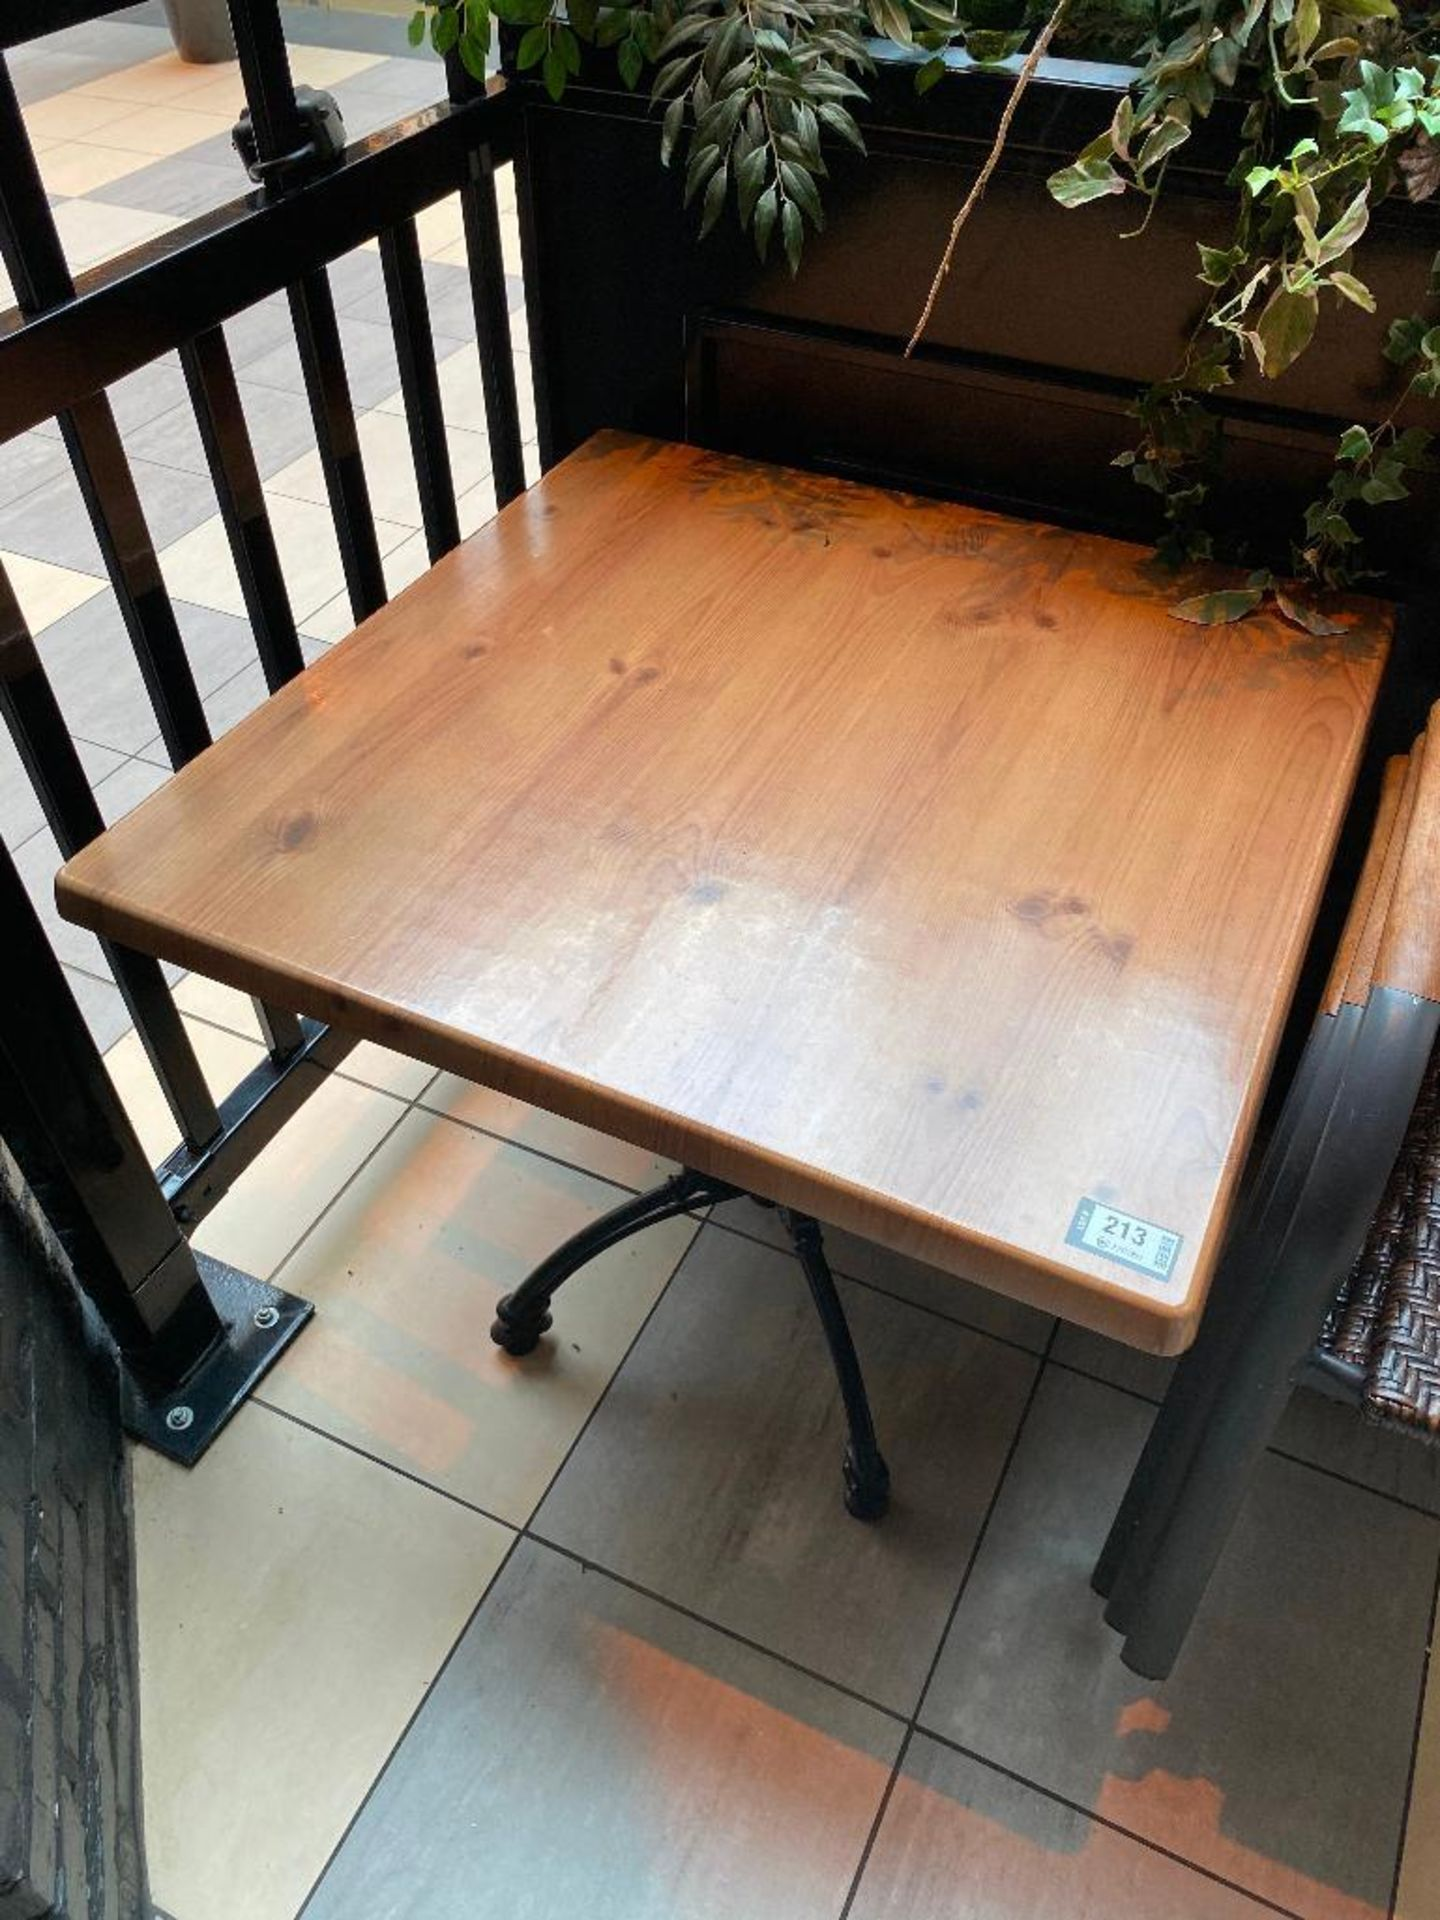 "TOPALIT 31"" X 31"" PATIO TABLE WITH 4 CHAIRS - Image 3 of 3"